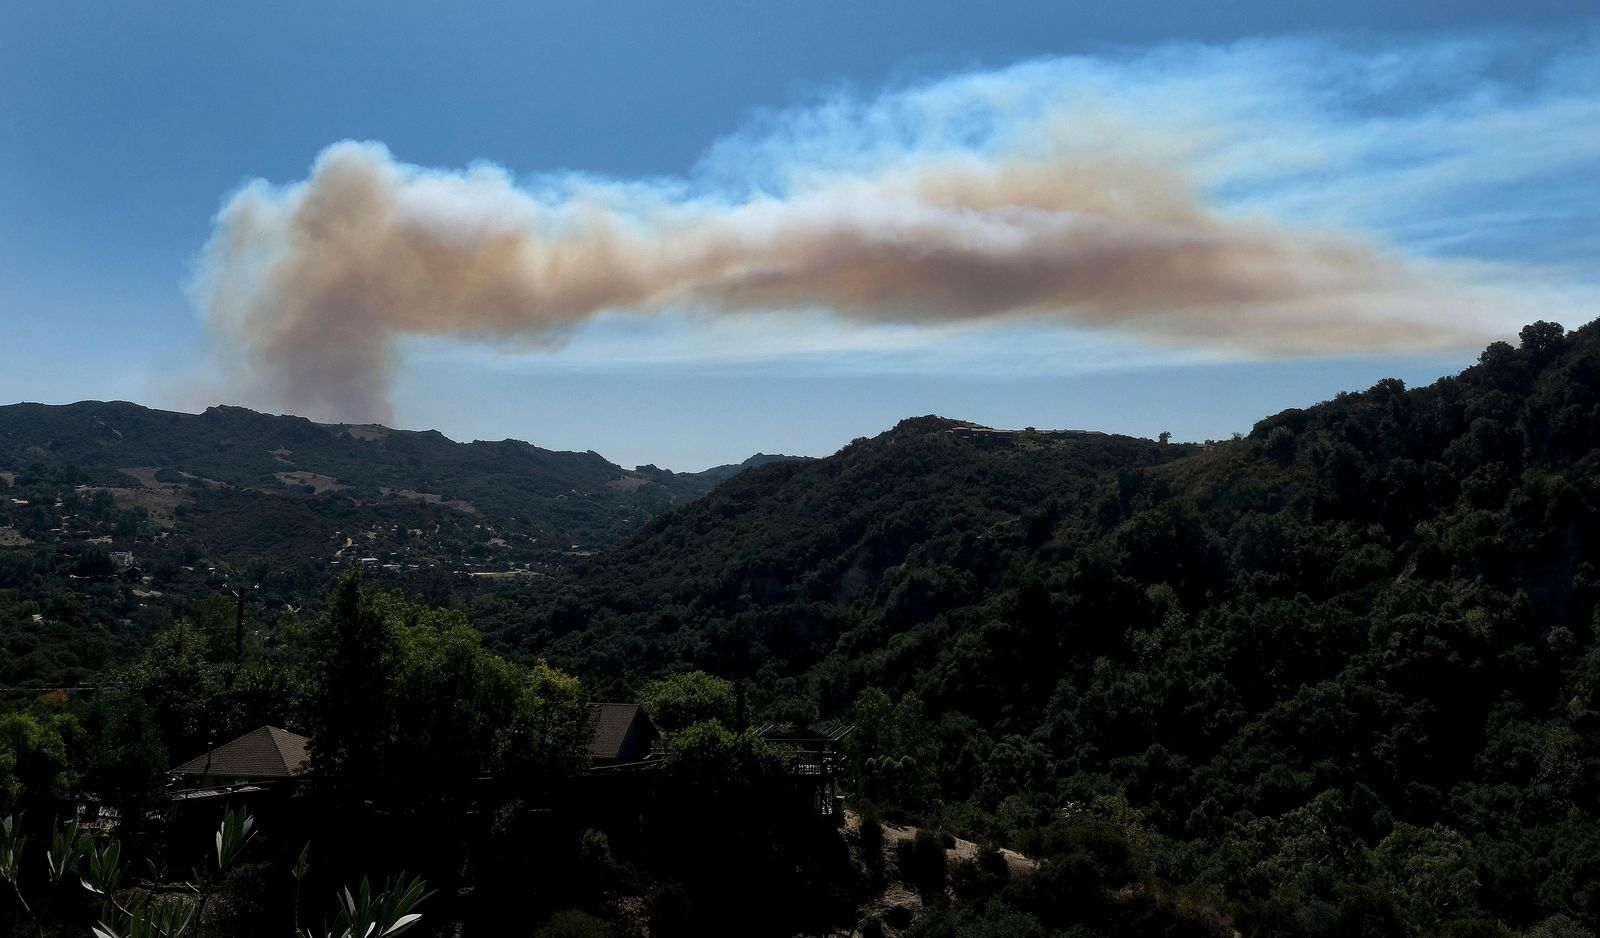 A giant plume of smoke rises from a fire in Pacific Palisades, as seen from Topanga Canyon in Topanga, Calif., Monday, Oct. 21, 2019. (Dean Musgrove/The Orange County Register via AP)